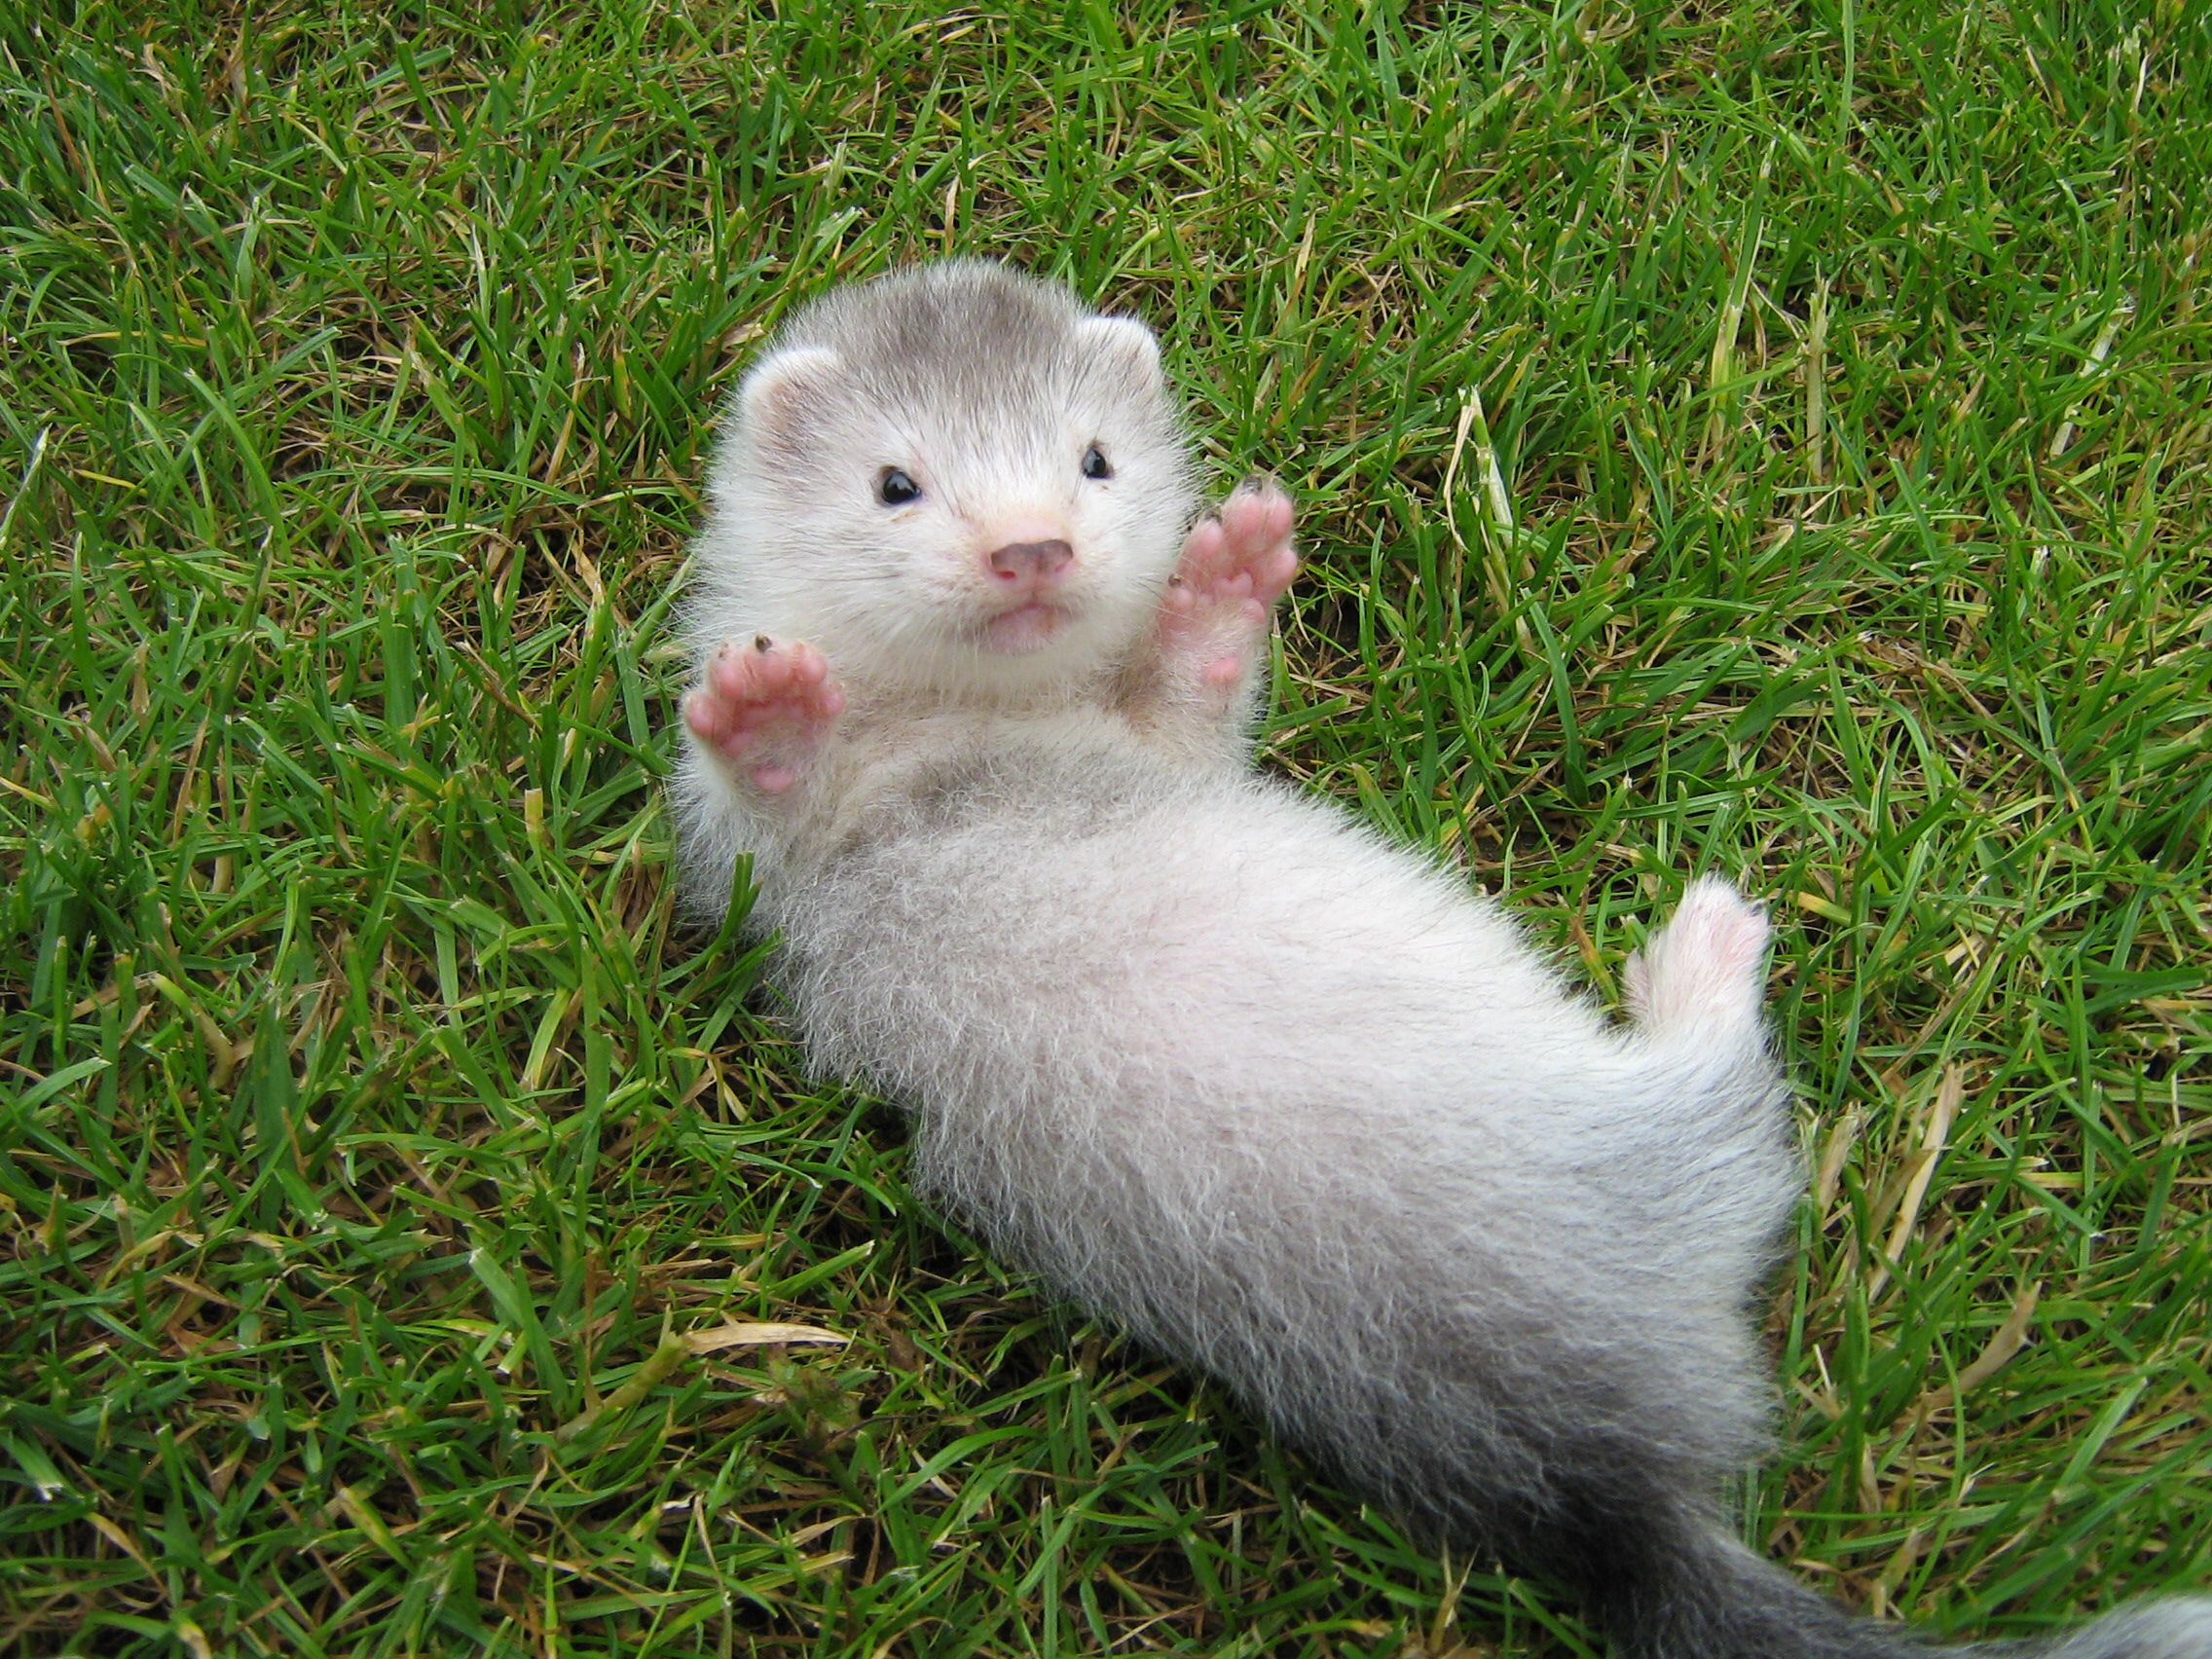 How Lonwg Do Ferrets Live Cute Ferrets Pet Ferret Baby Ferrets